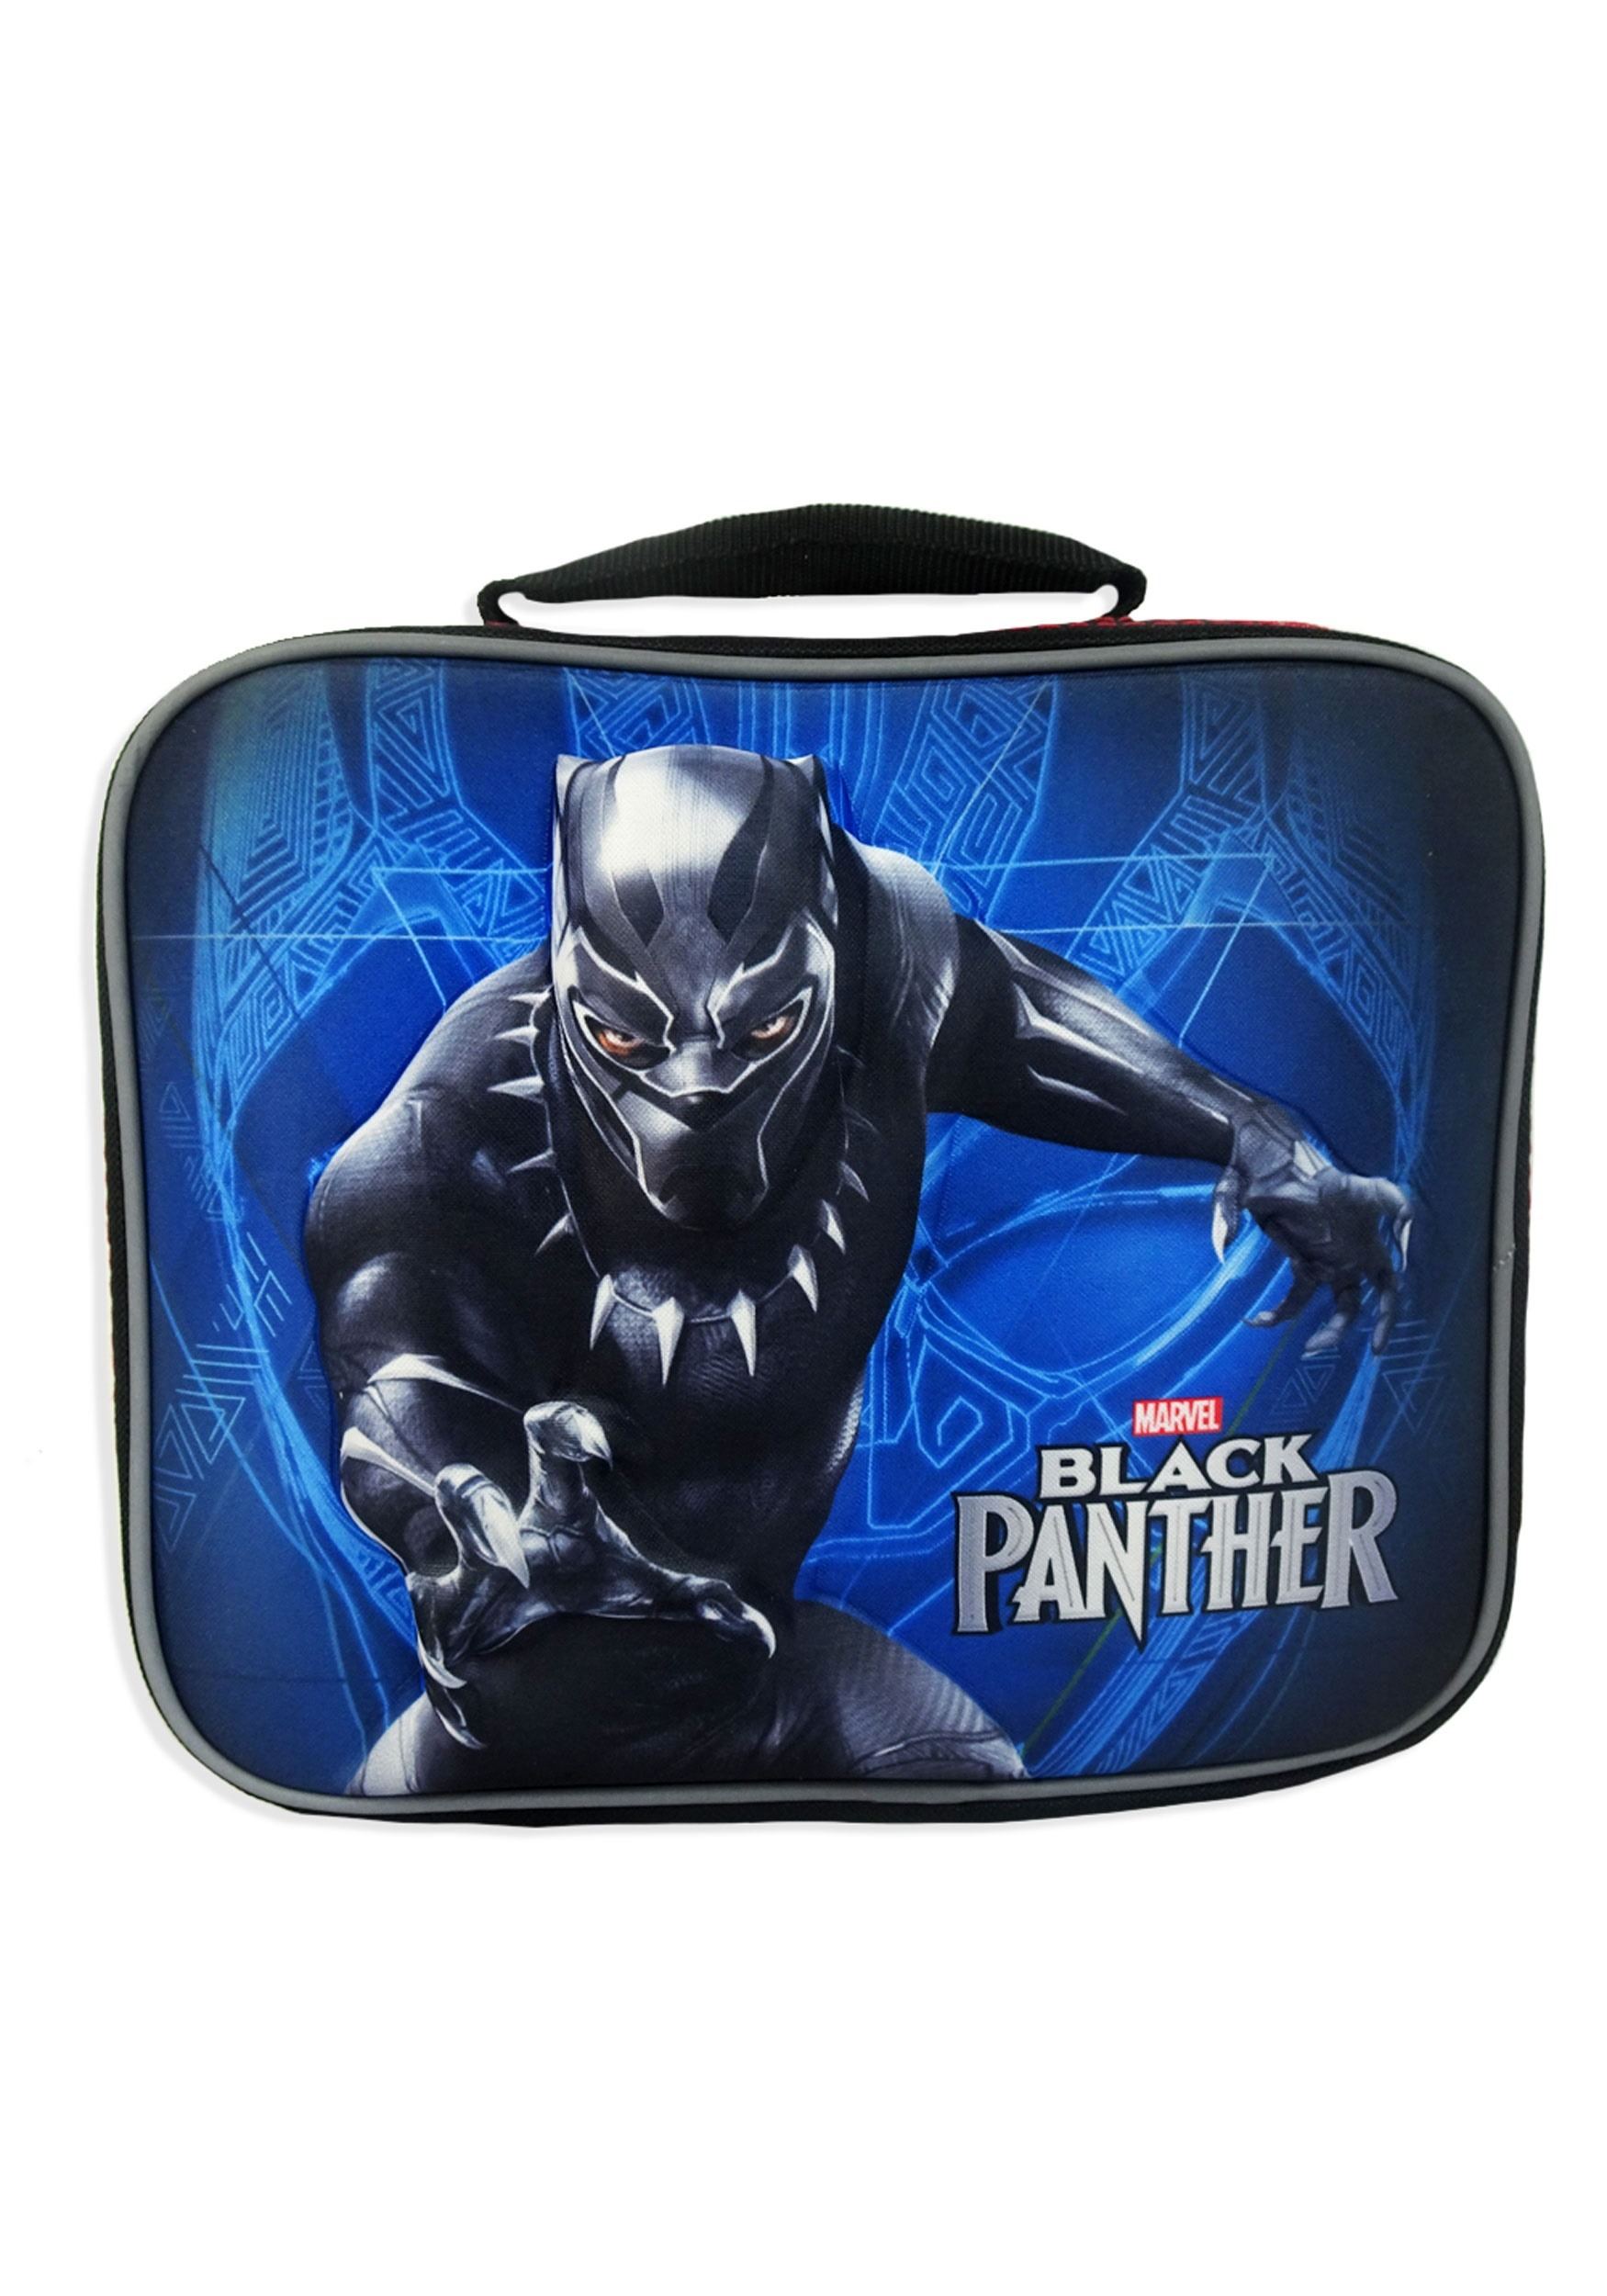 Black Panther Lunch Box for Kids